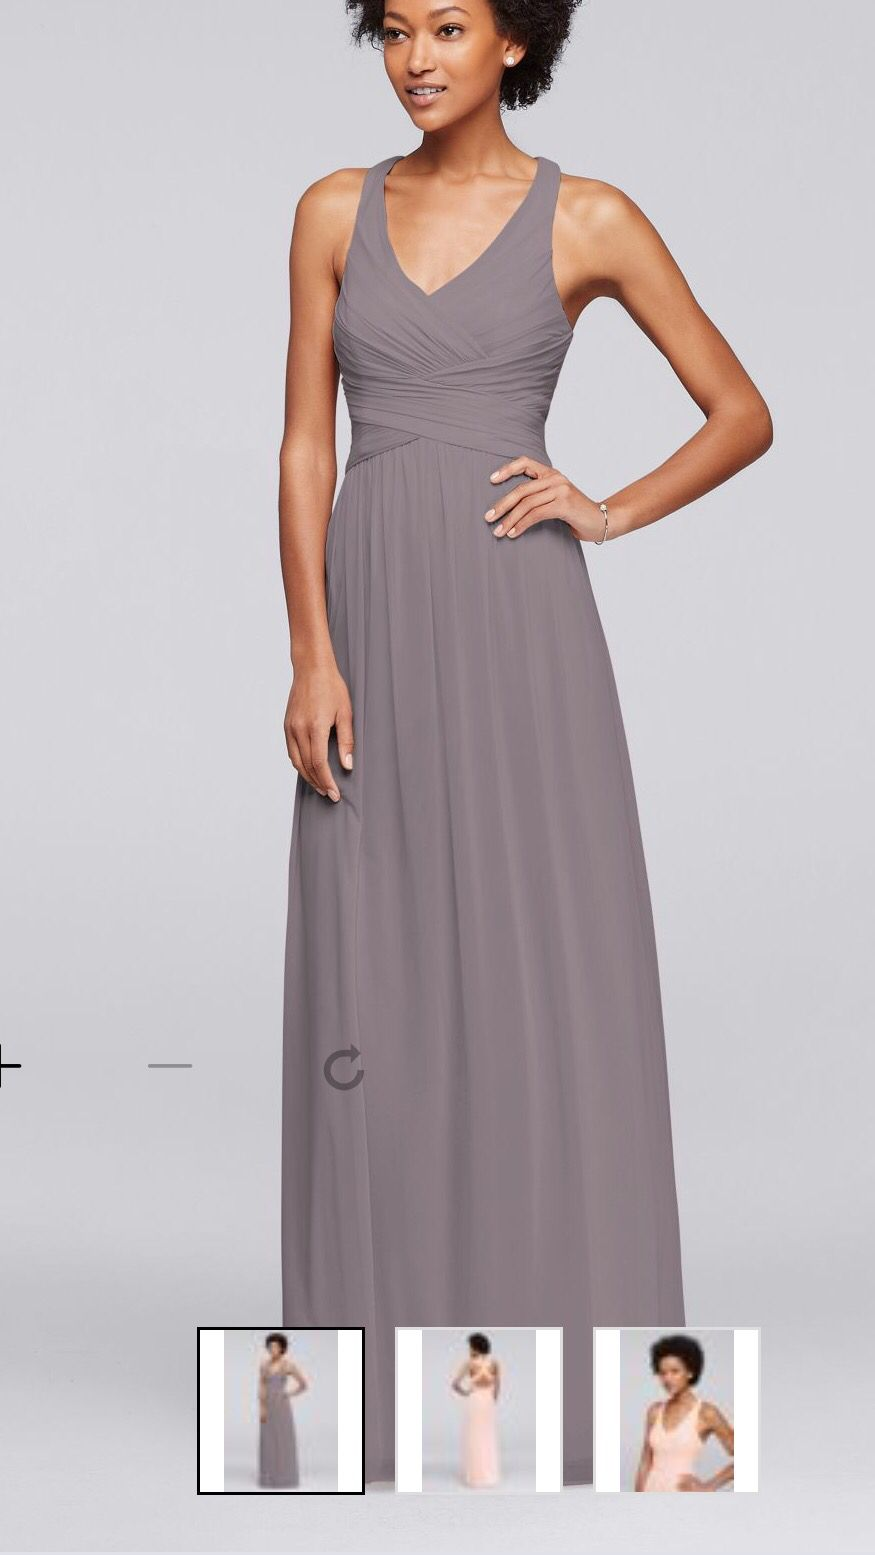 26253bf4f2 Portobello David s Bridal Bridesmaid dress. For Bridesmaids. And petal for  Maids of Honor